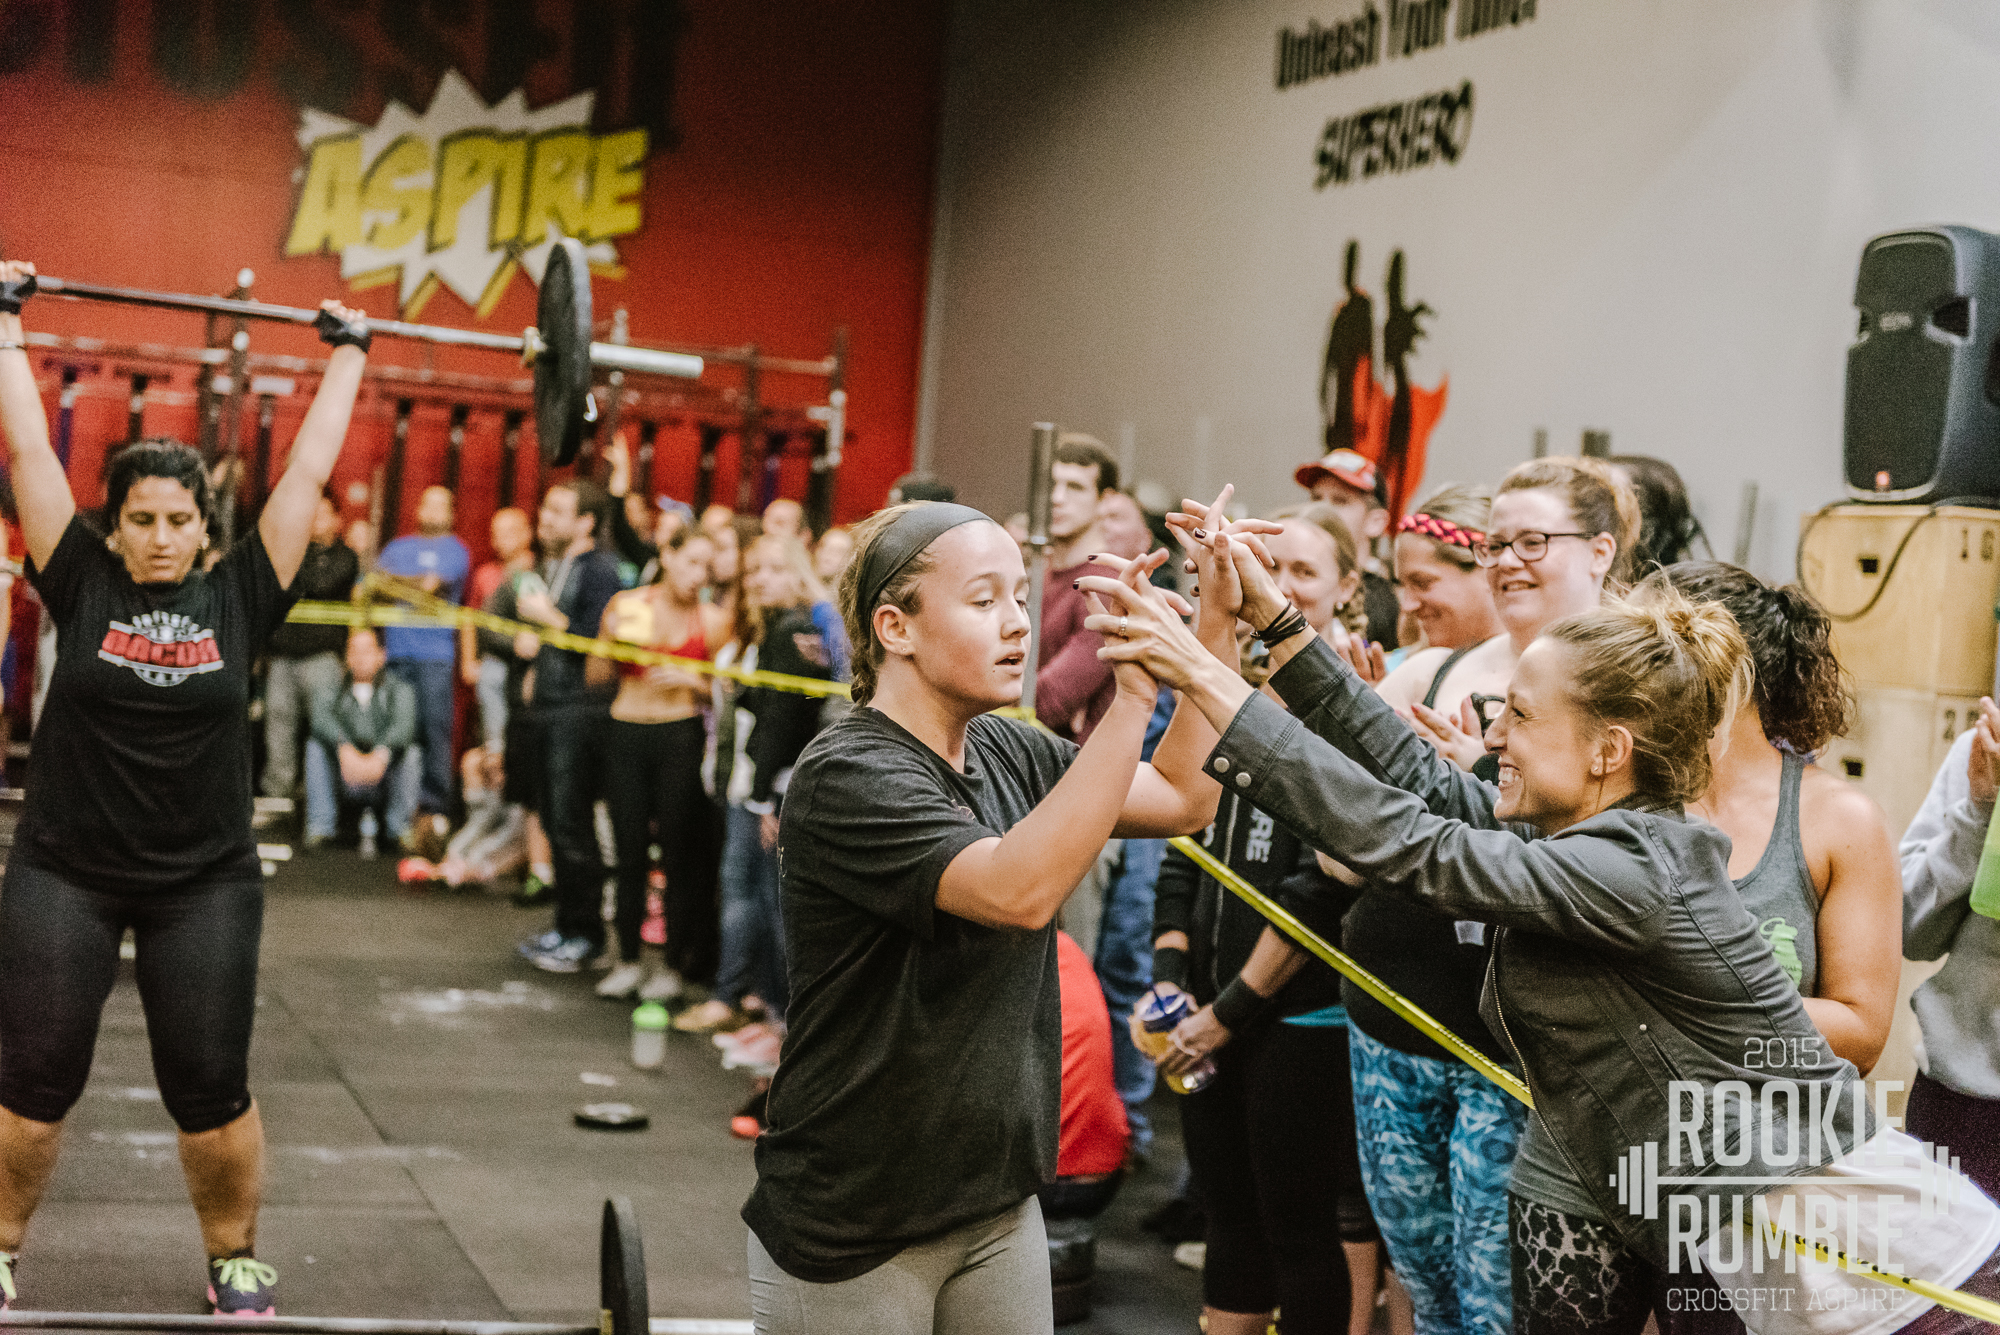 Show up, work out, have fun. That's the Rookie Rumble Way!